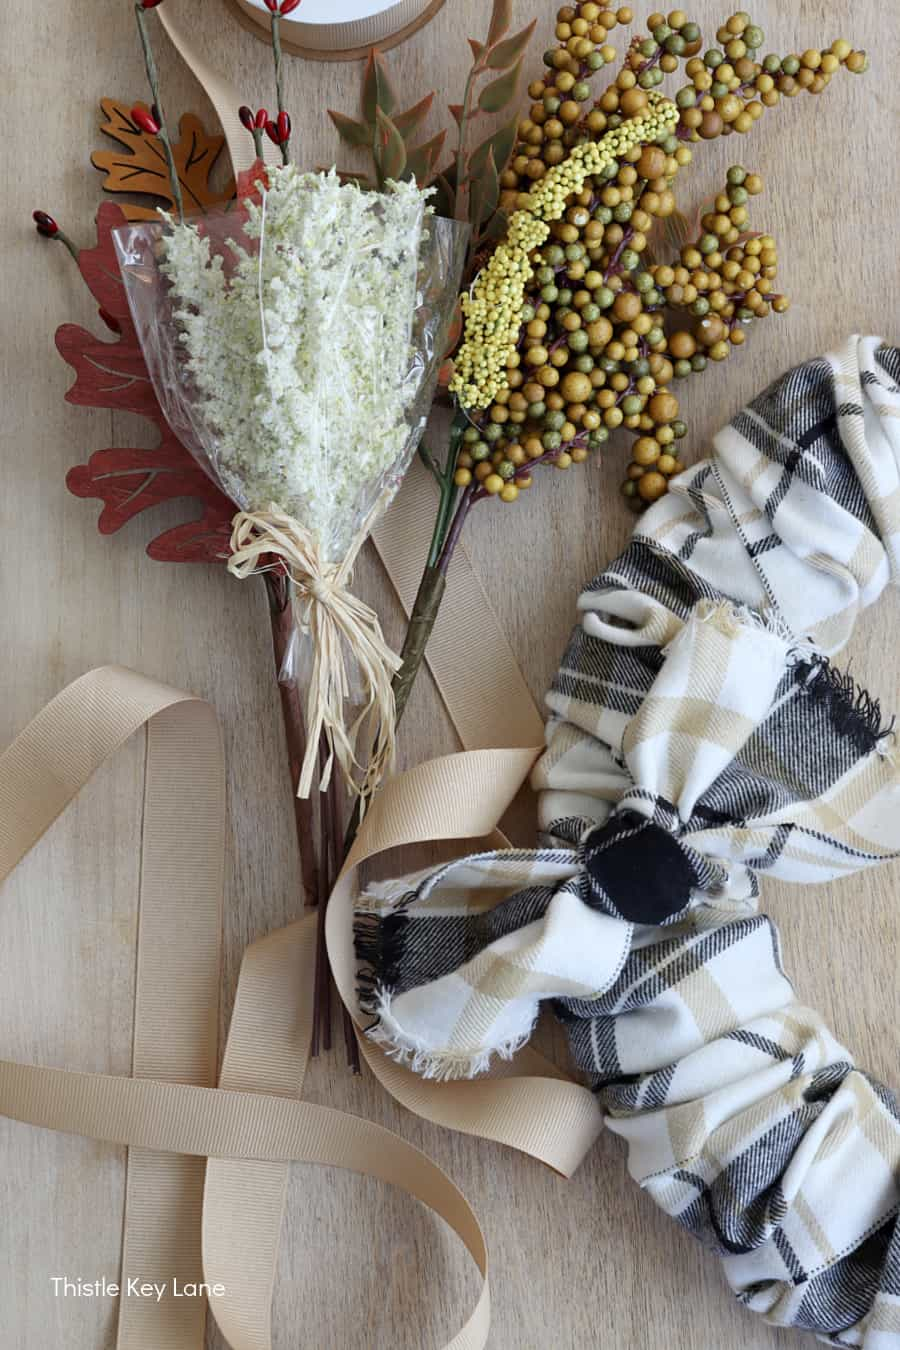 Floral picks in fall colors next to plaid wreath.